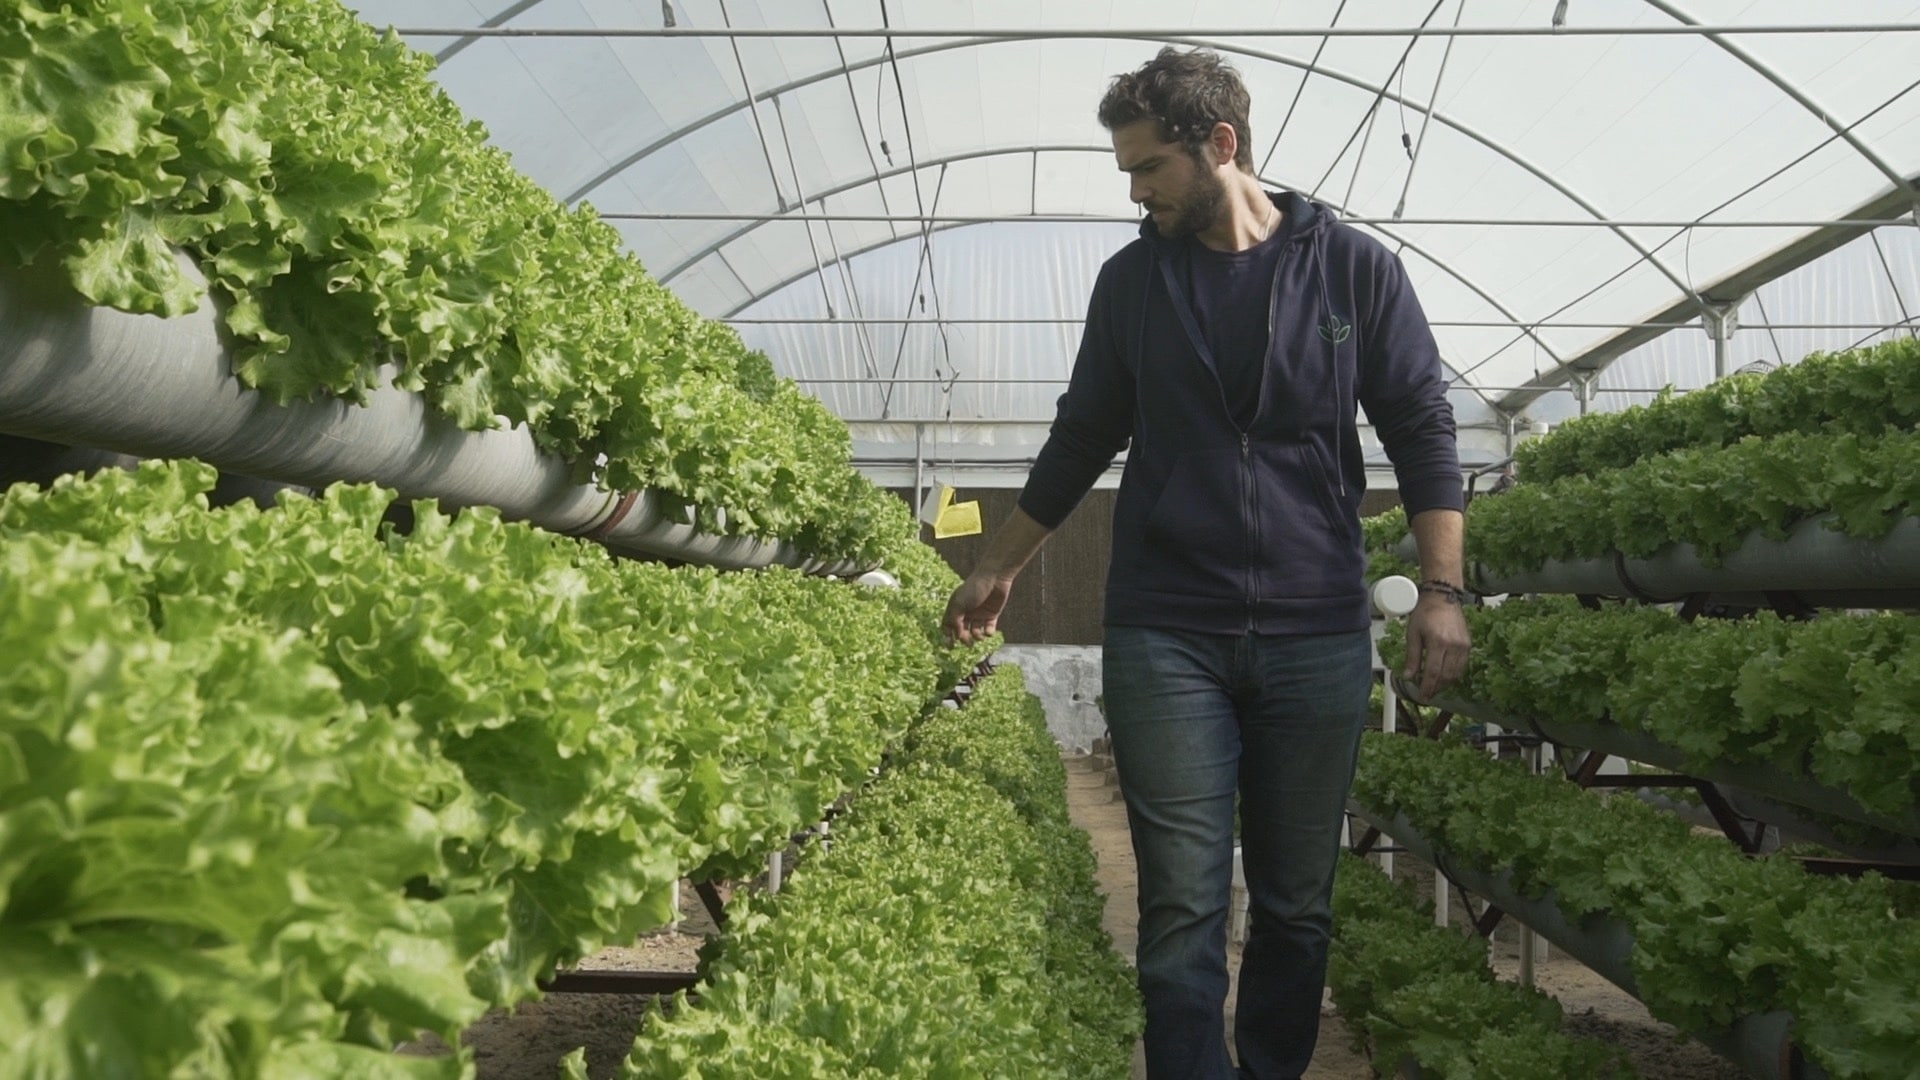 Hydroponic Farming: An Ancient Solution to a New Problem